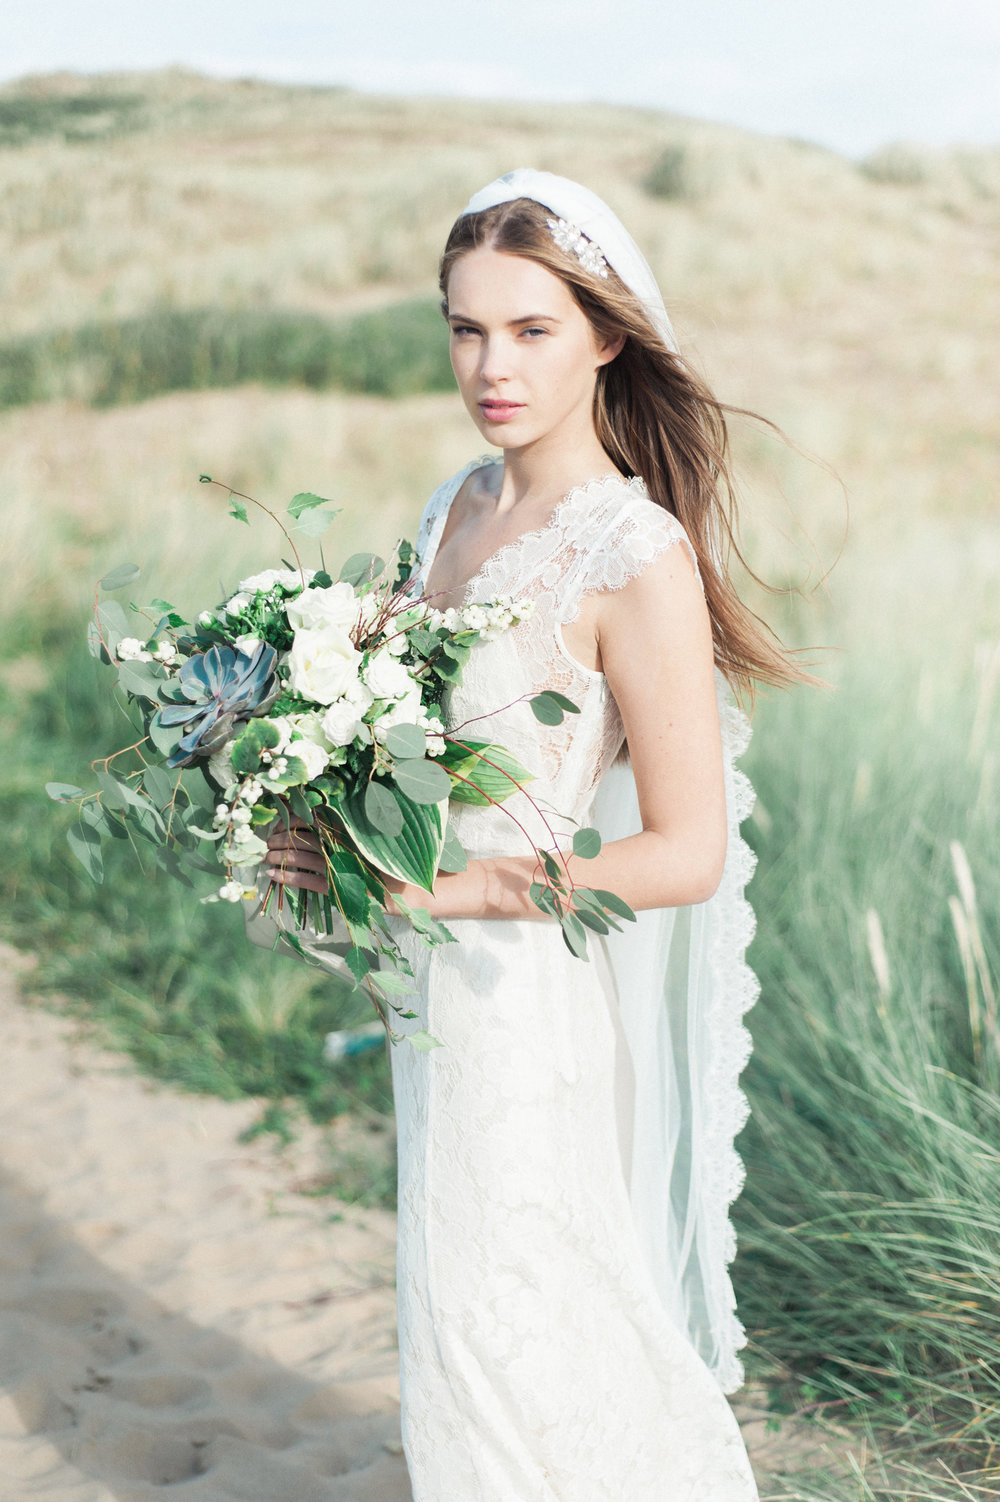 Kate-Beaumont-Wedding-Dresses-Formby-Beach-Emma-Pilkington-2.jpg